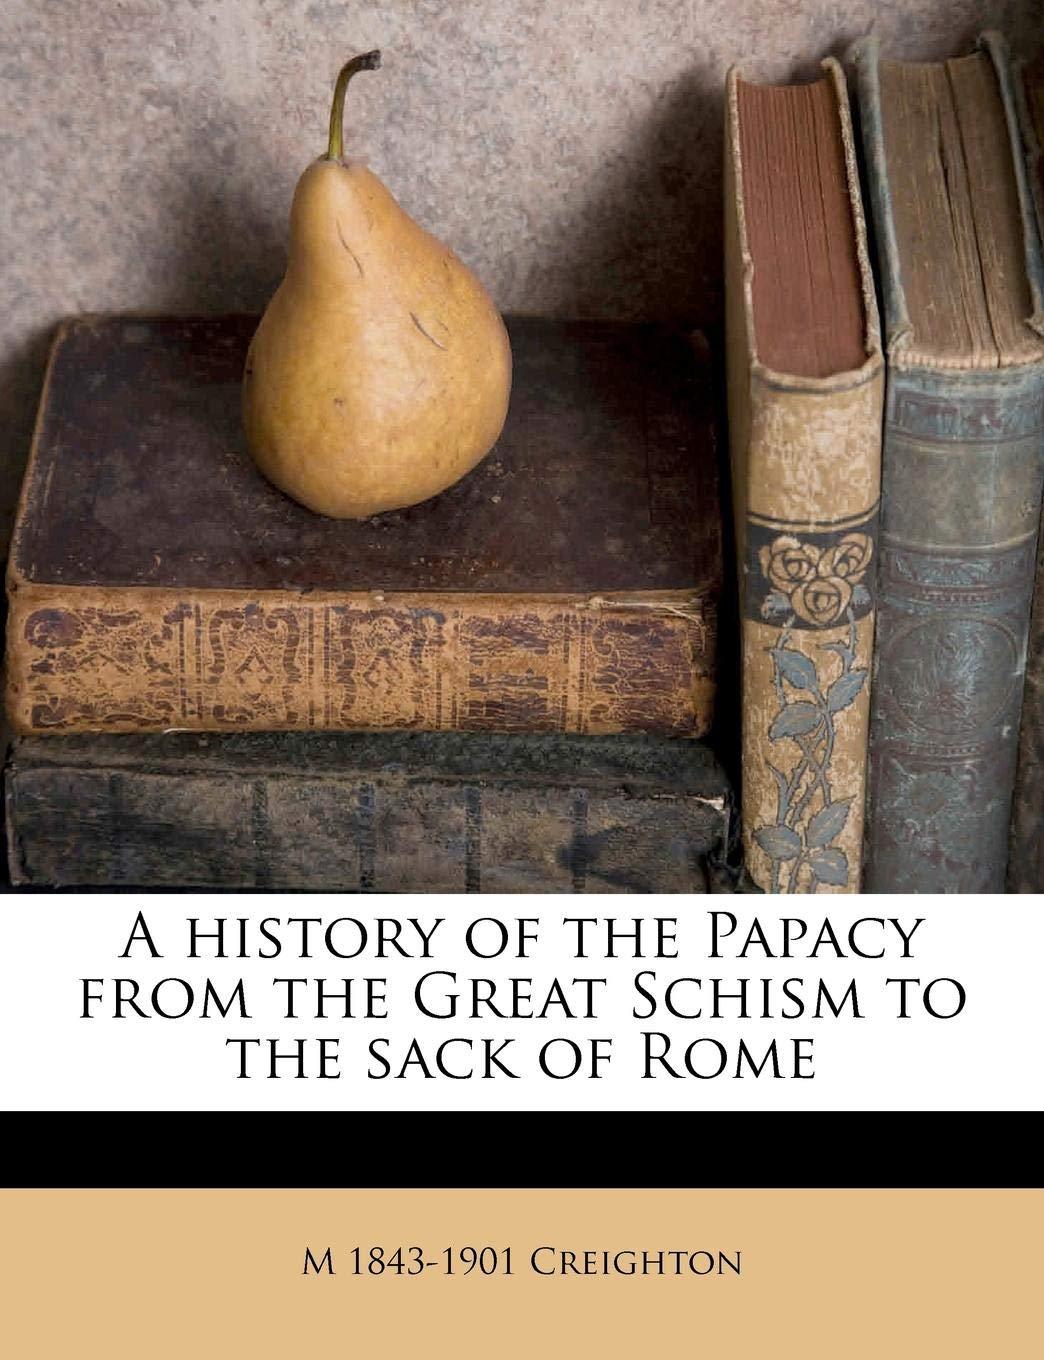 A HISTORY OF THE POPES FROM  THE GREAT SCHISM TO THE SACK OF ROME